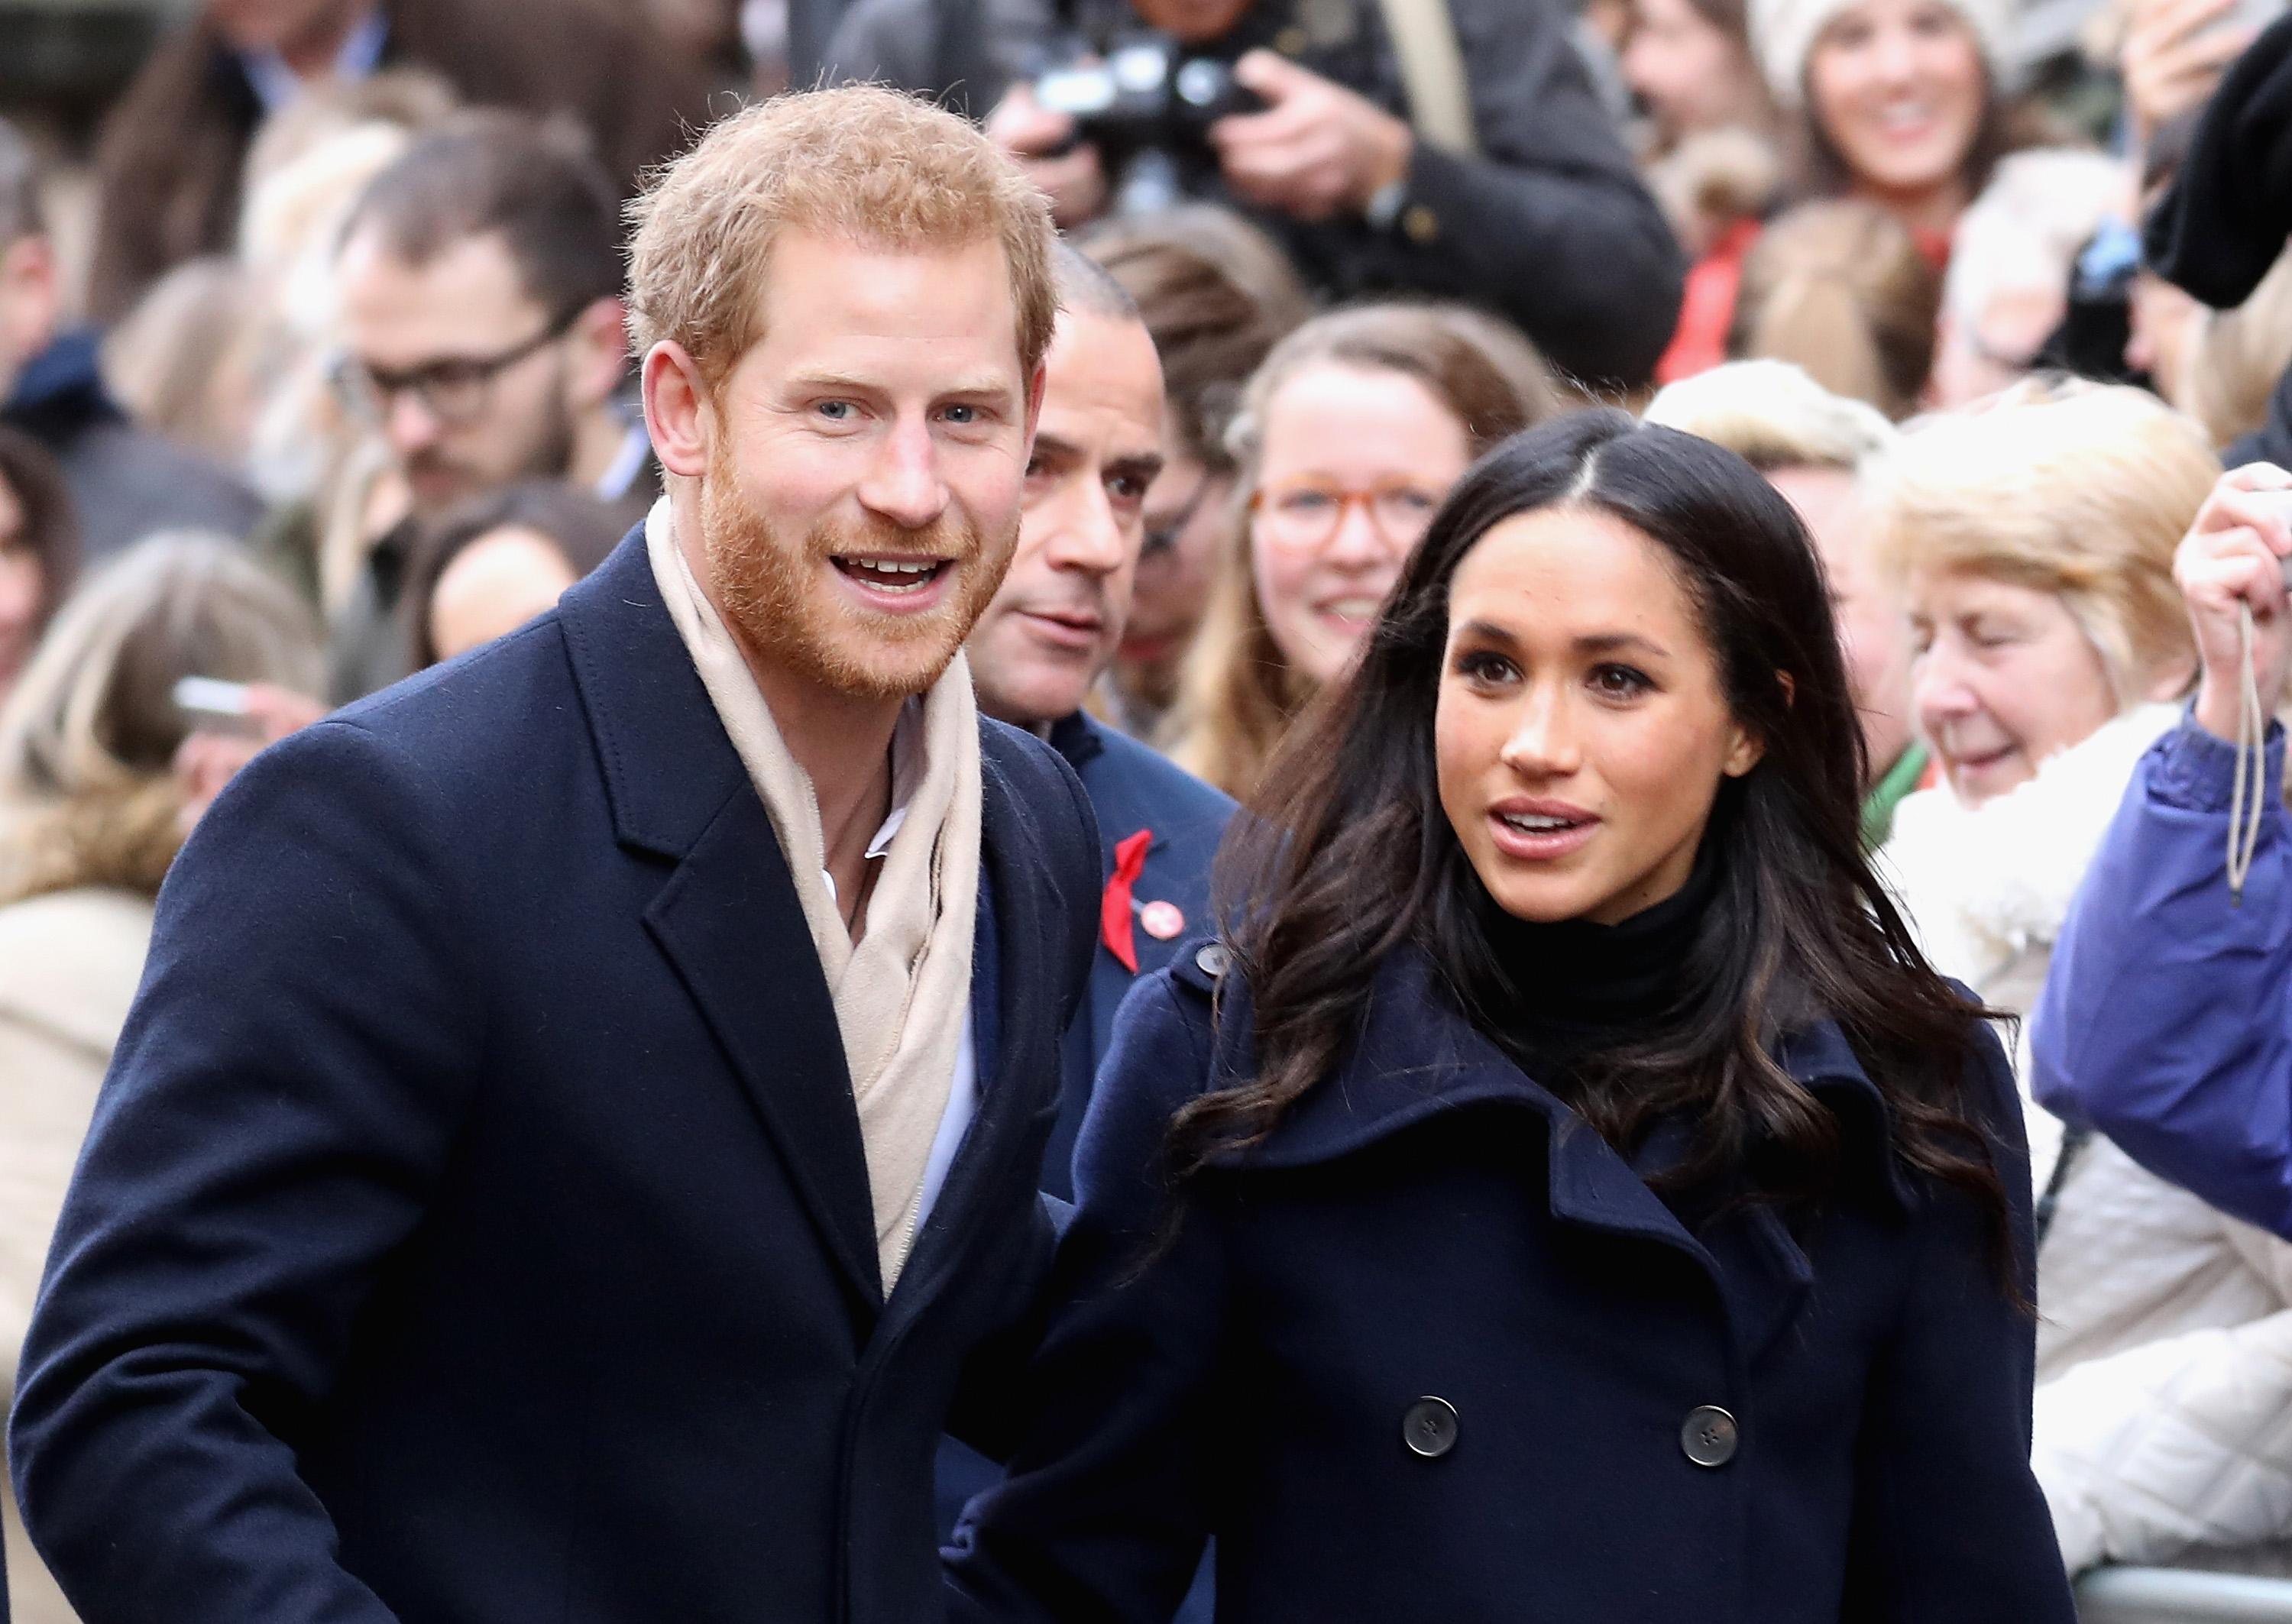 Prince Harry, Meghan Markle release official engagement portraits ahead of royal wedding